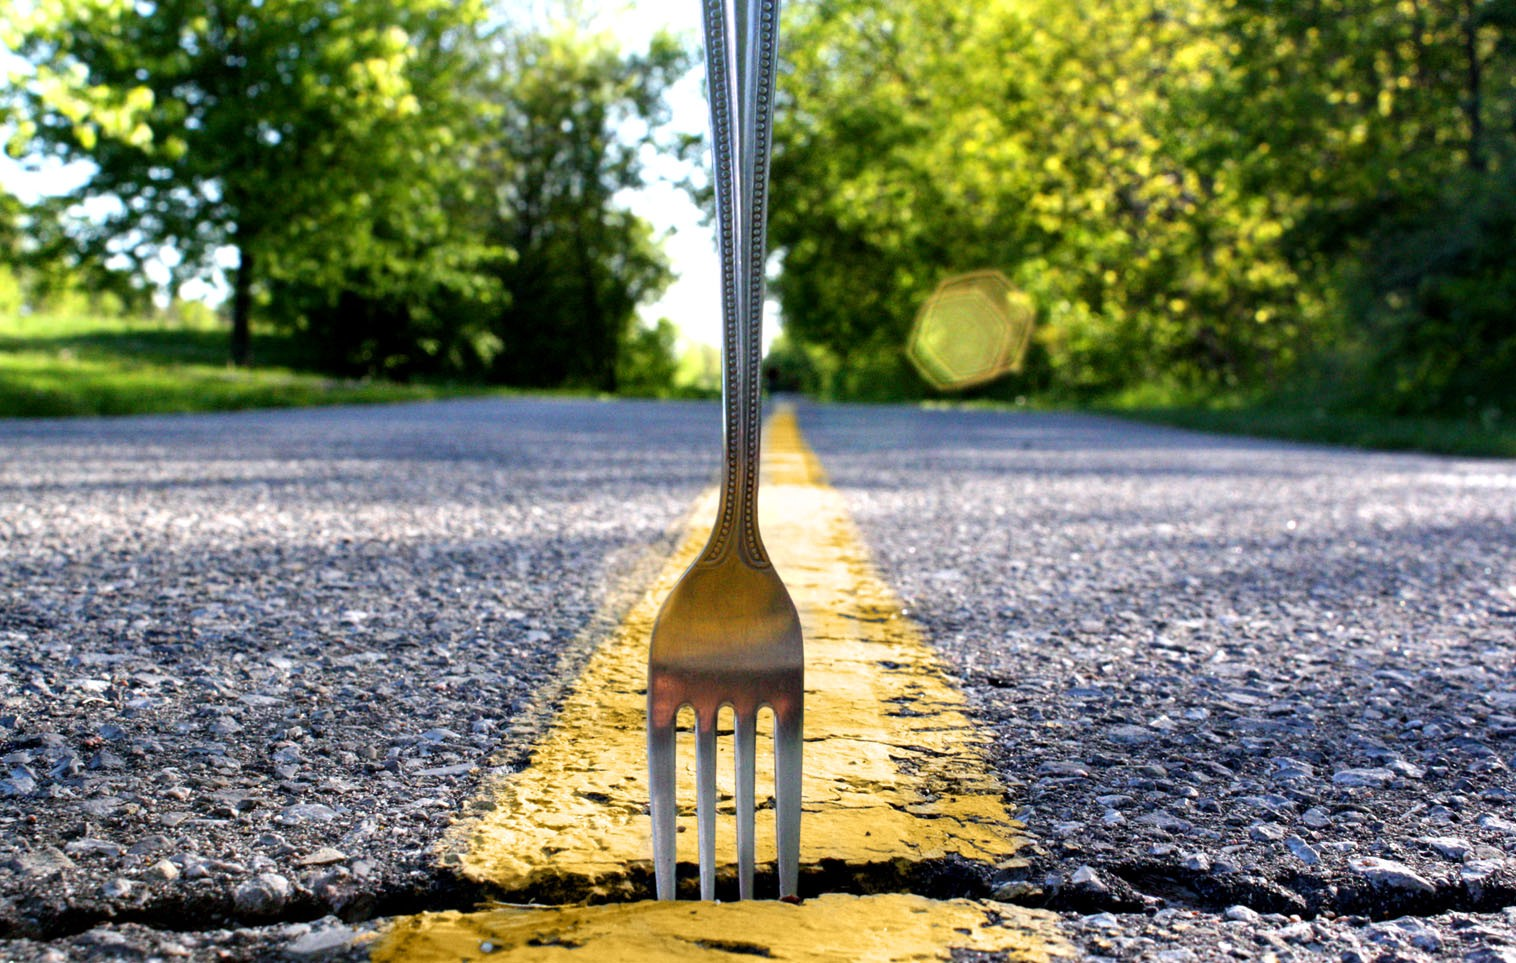 Fork in the road for ecommerce fulfillment